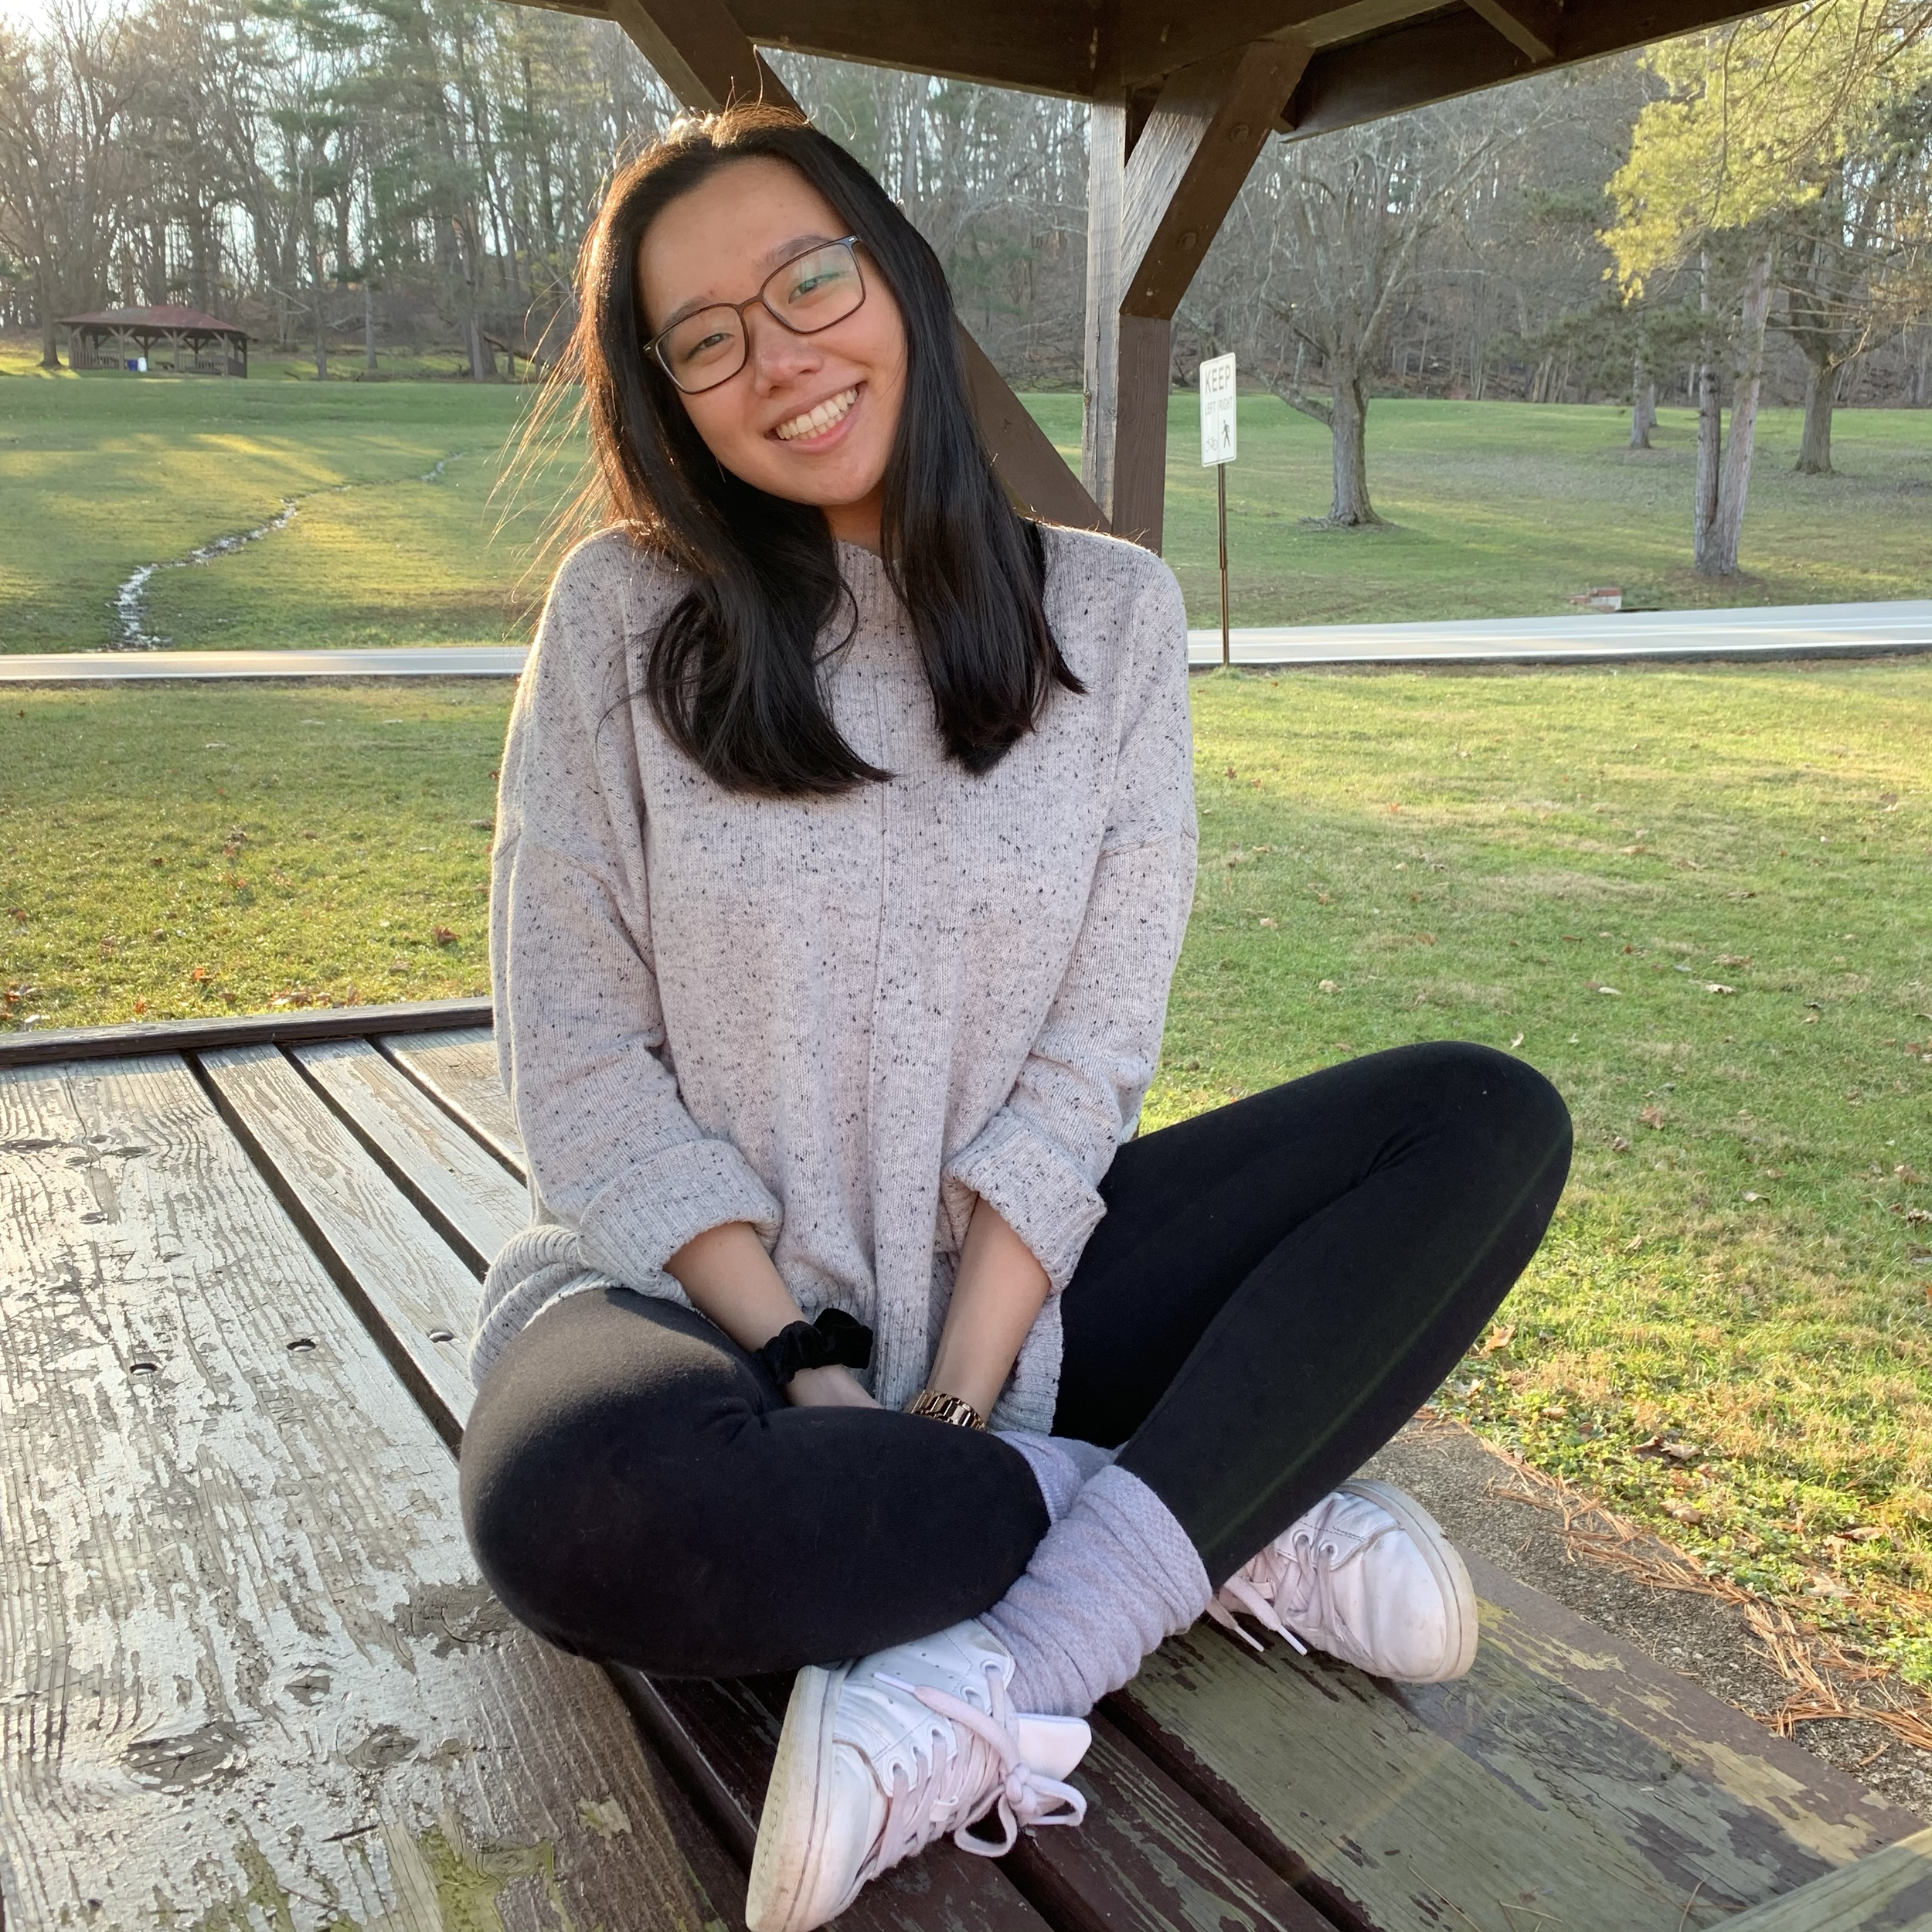 """Gina Wang    Pronouns:  She/Her/Hers   Academic Year:  Freshman   Major:  Computational Biology on the Pre-Med Track   Hometown:  Pittsburgh, PA   Cultural Identity:  Chinese American  """"I really like arts and crafty things! I focus mostly on sewing and embroidery, but I love to paint too. I also enjoy dancing! I'm almost always a cheerful person and get excited very easily, although I'm usually shy at first, but once I get to know people I'm much more outgoing."""""""